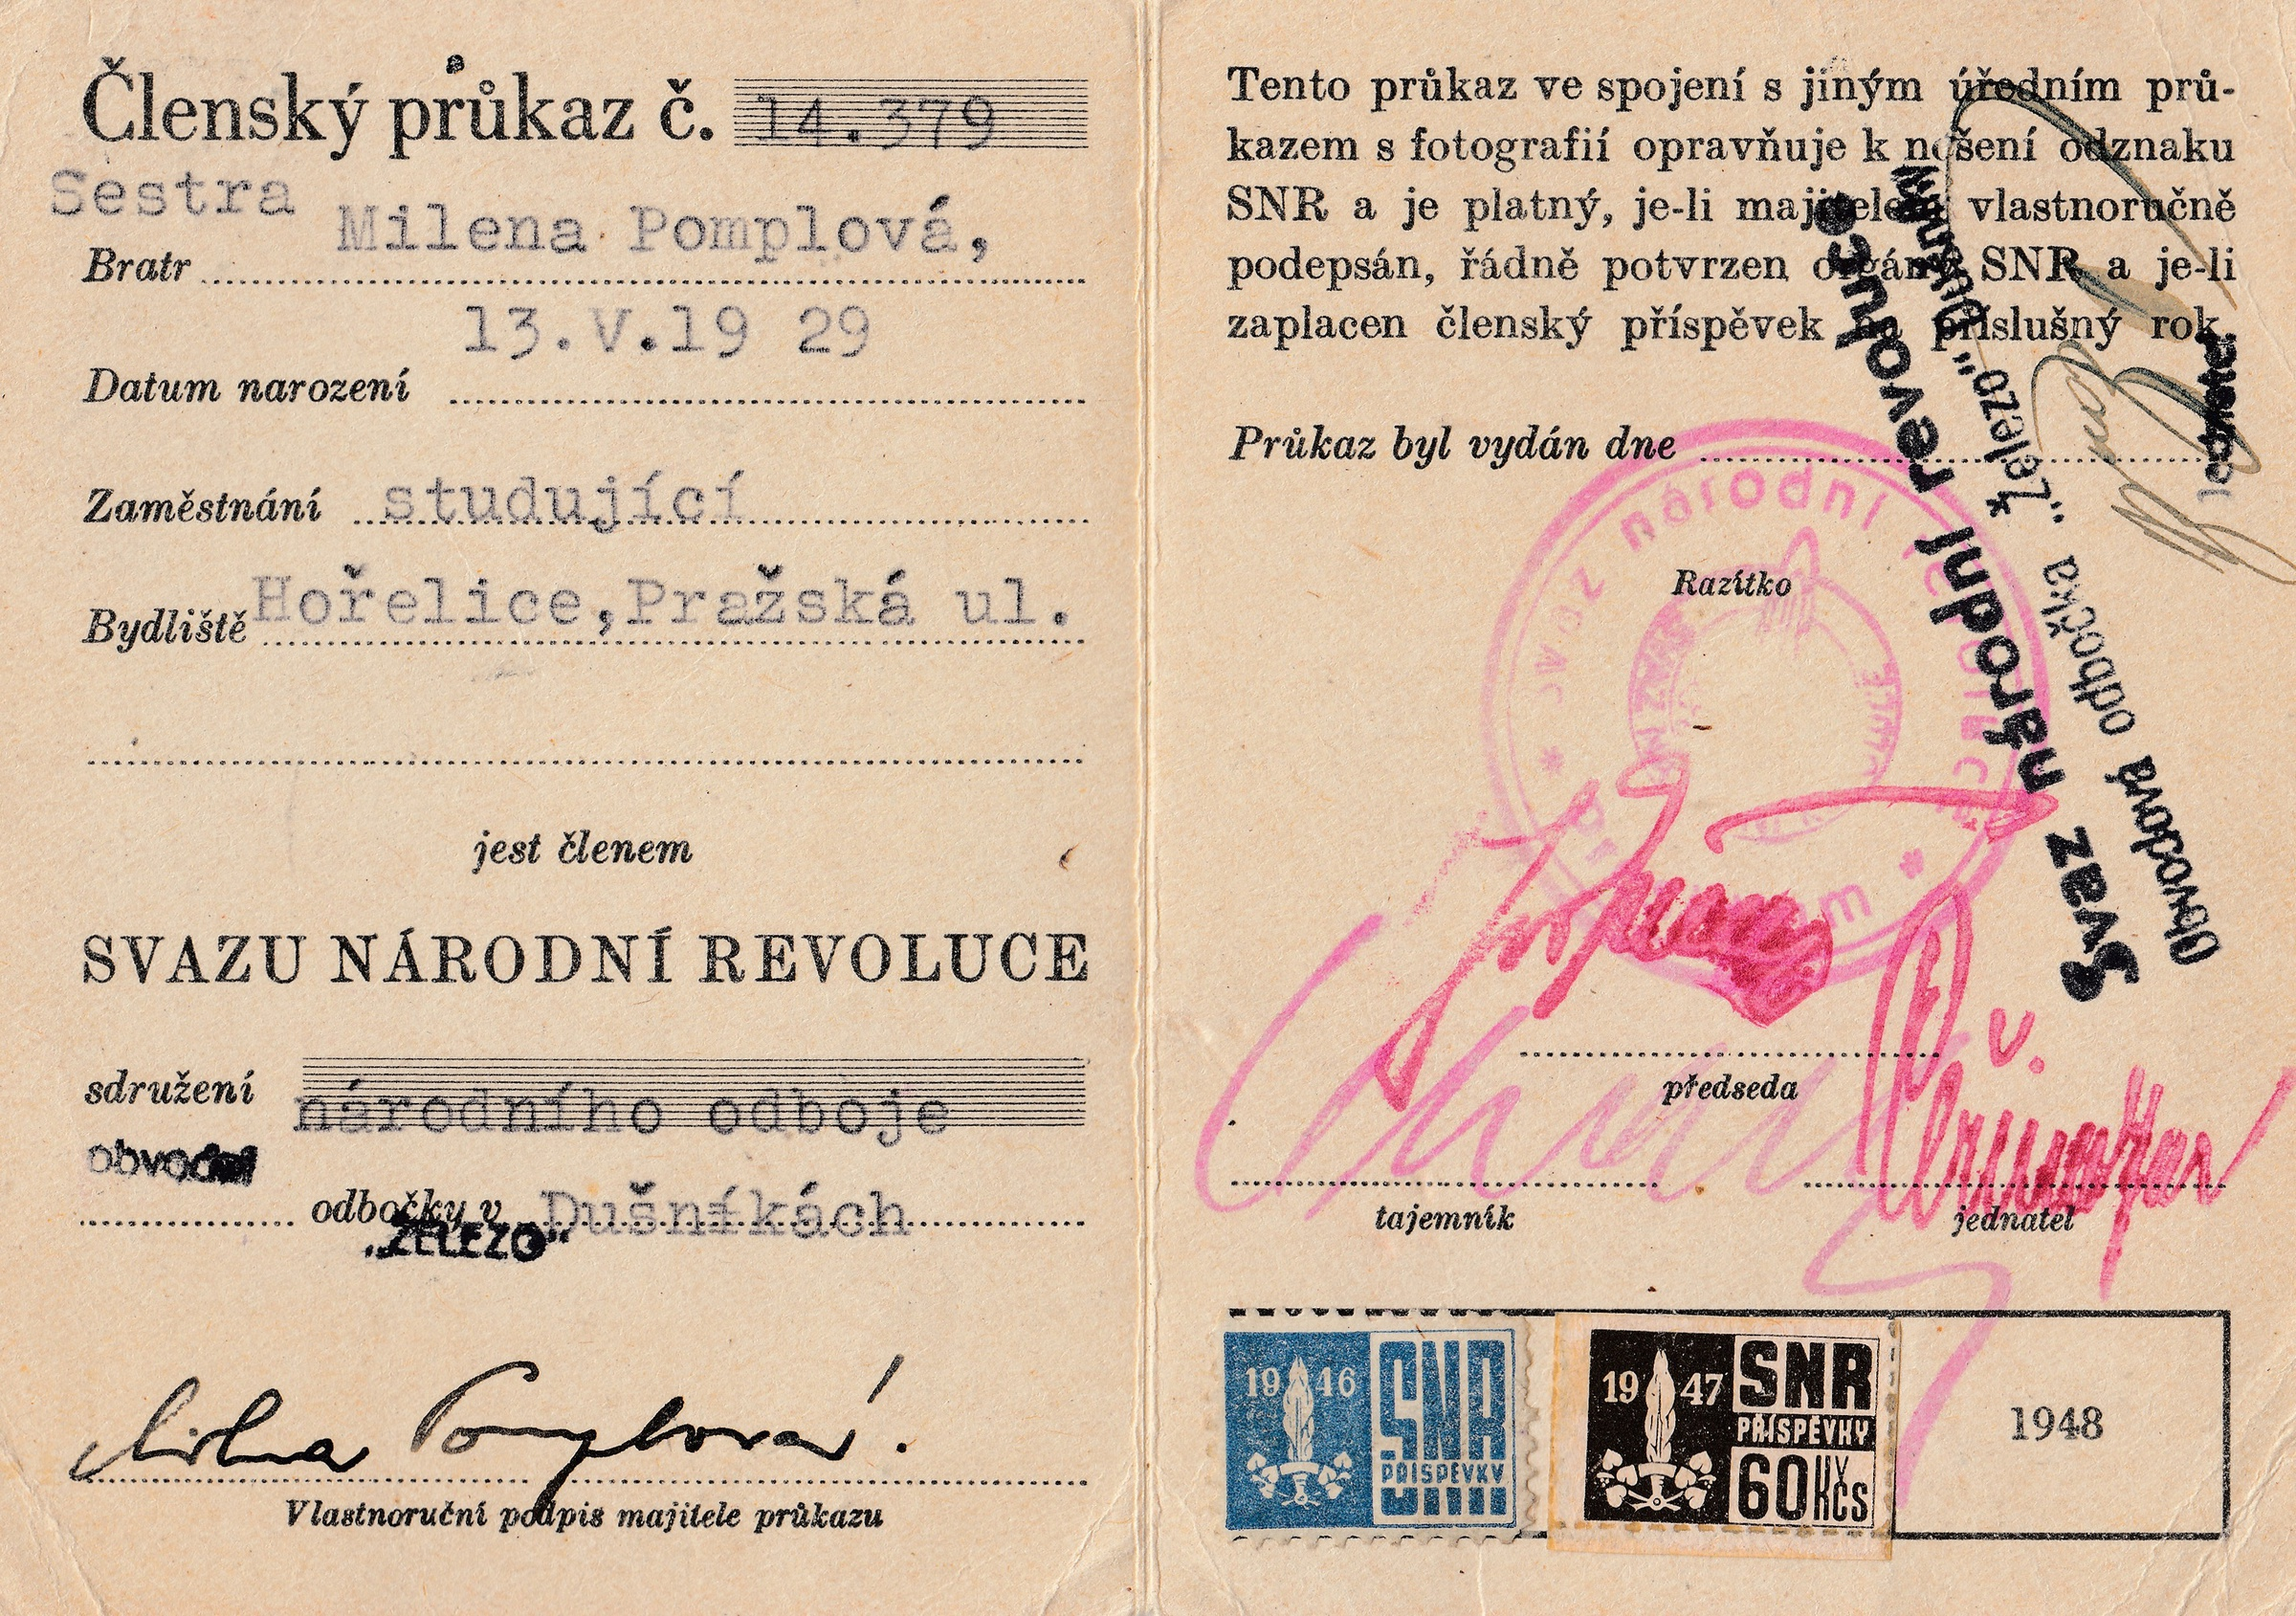 Membership card of the Union of National Revolution 9a0a074455